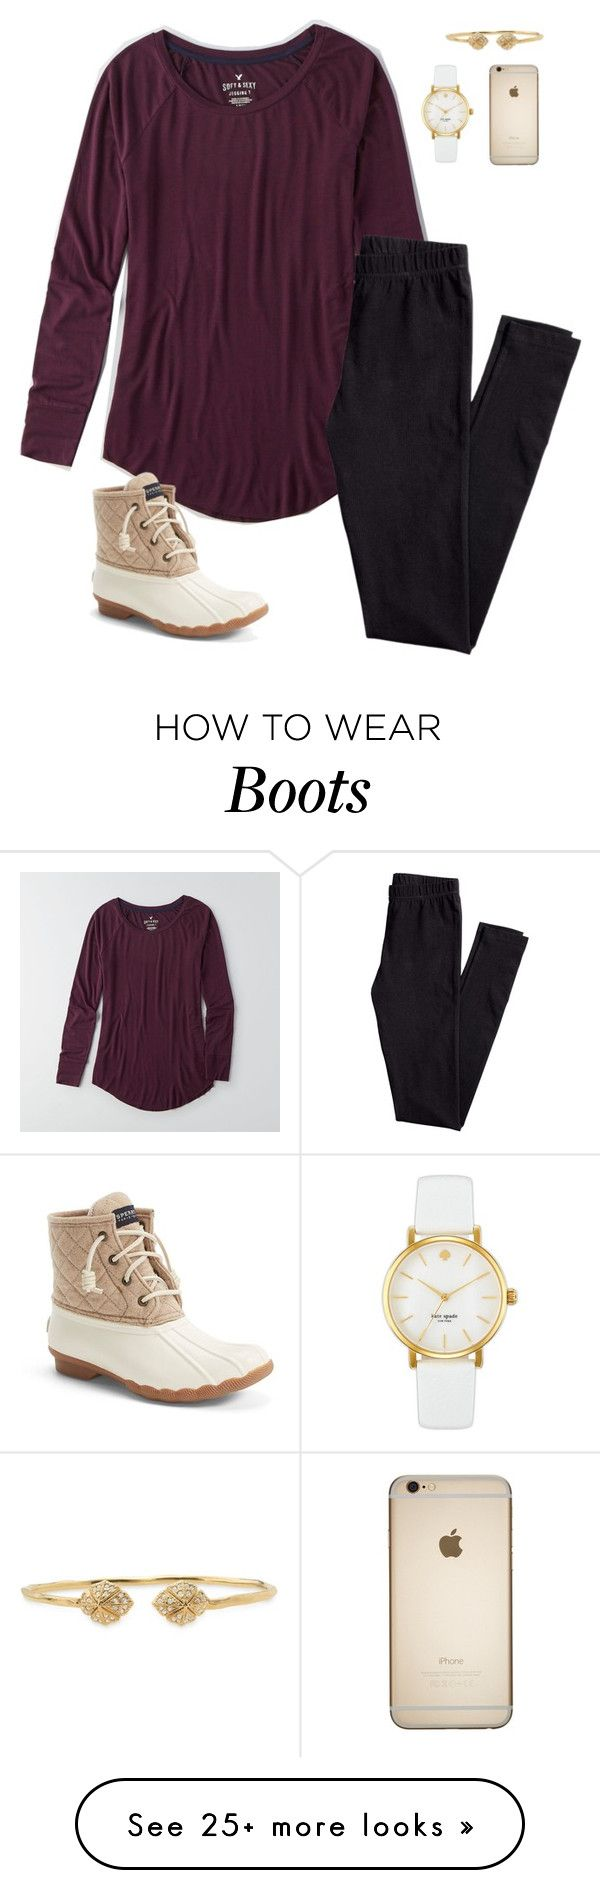 """Bean boots and maroon shirts"" by oliveee-heinzzz on Polyvore featuring American Eagle Outfitters, H&M, Sperry Top-Sider, Stella & Dot and Kate Spade"